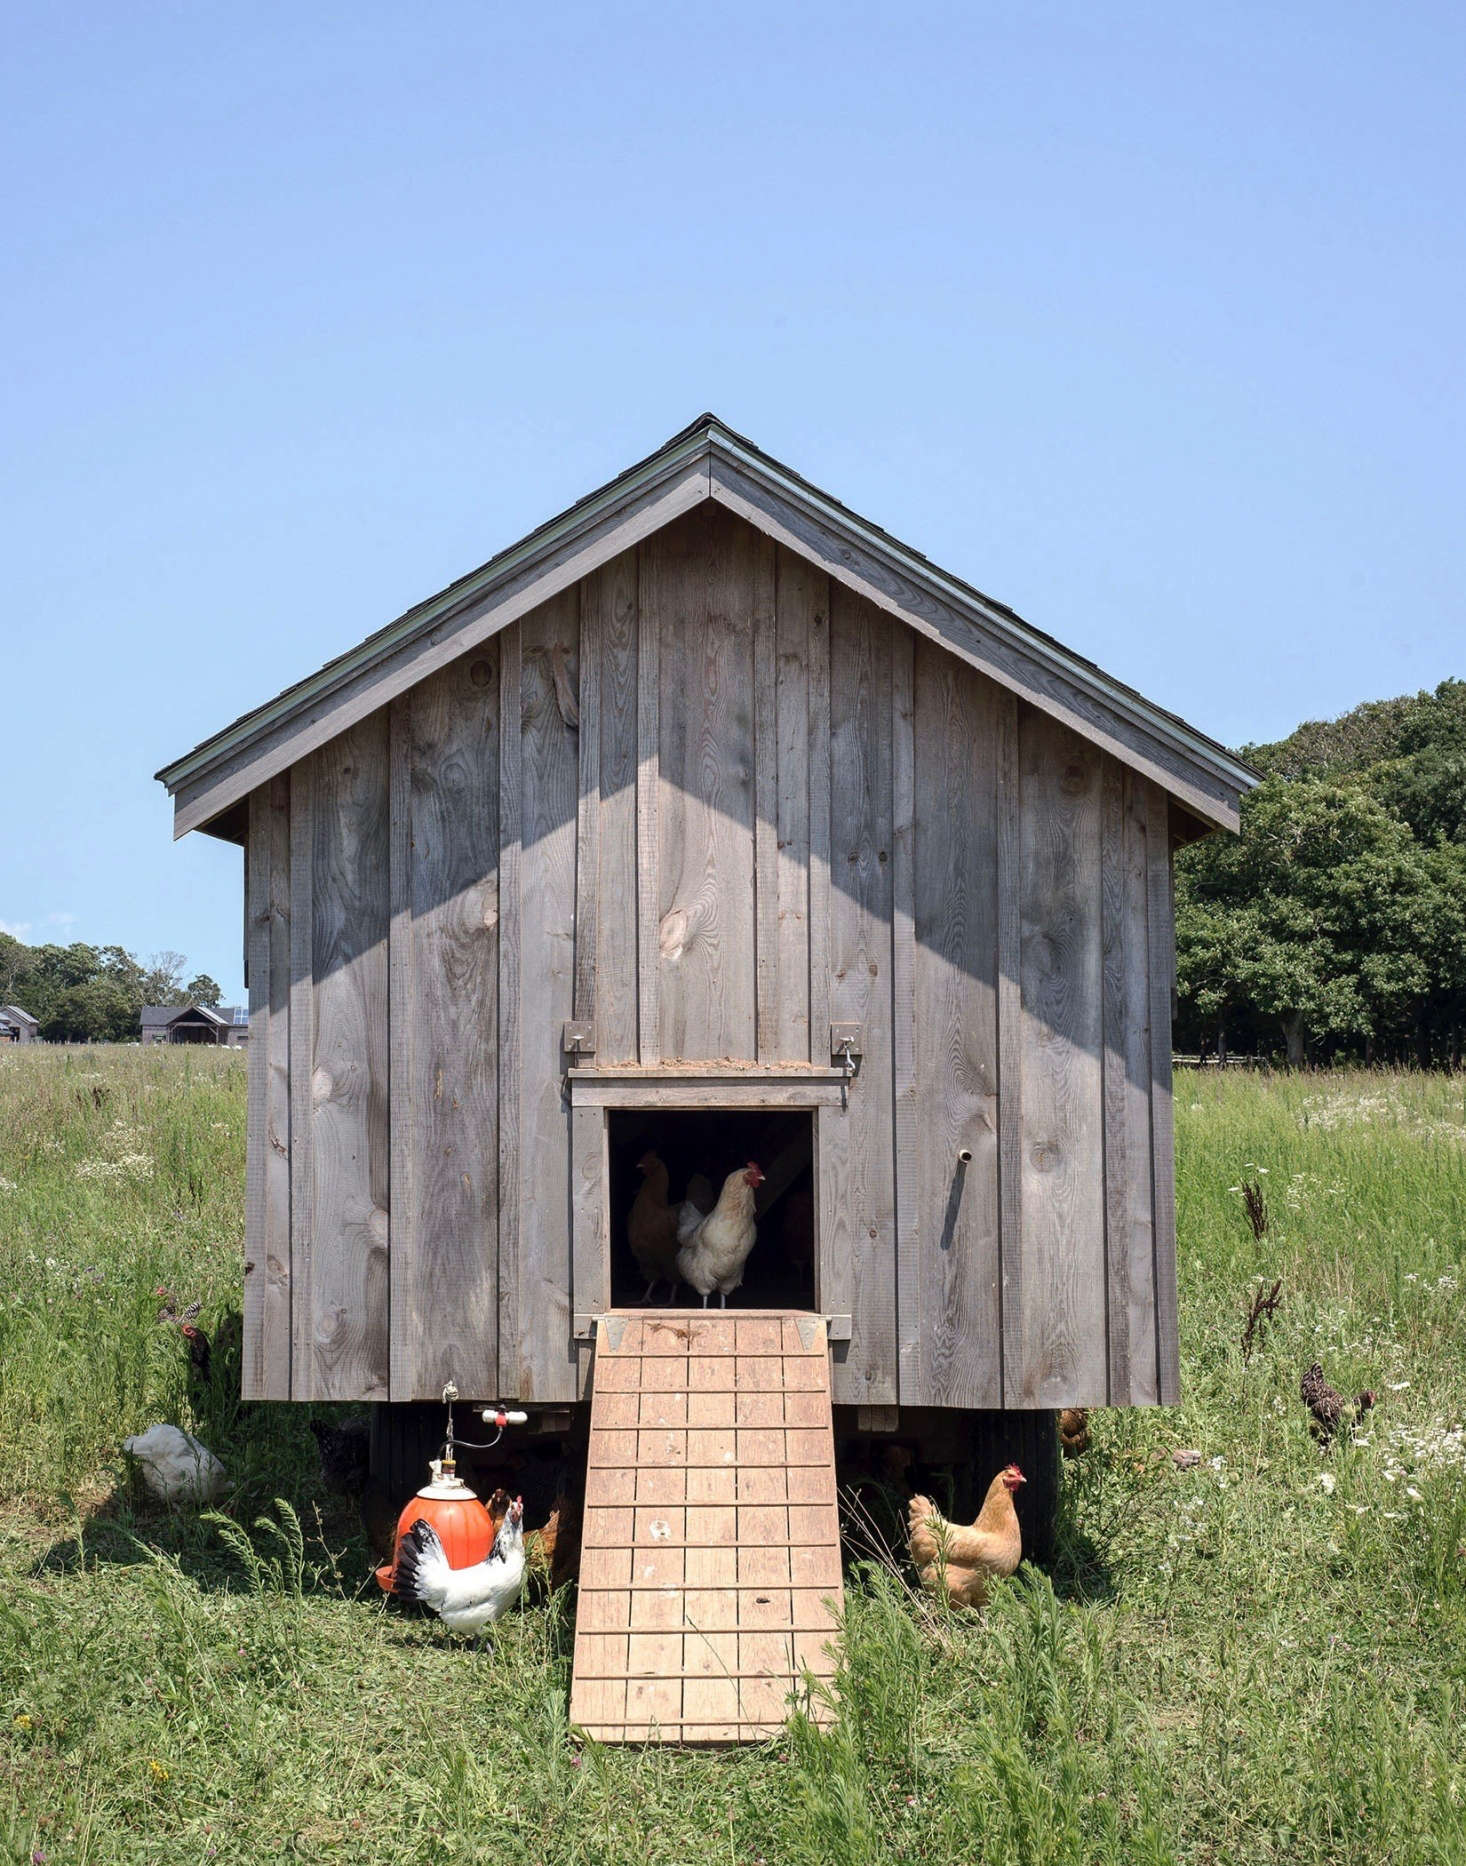 Along with the cows, the chickens are moved every day, giving them &#8